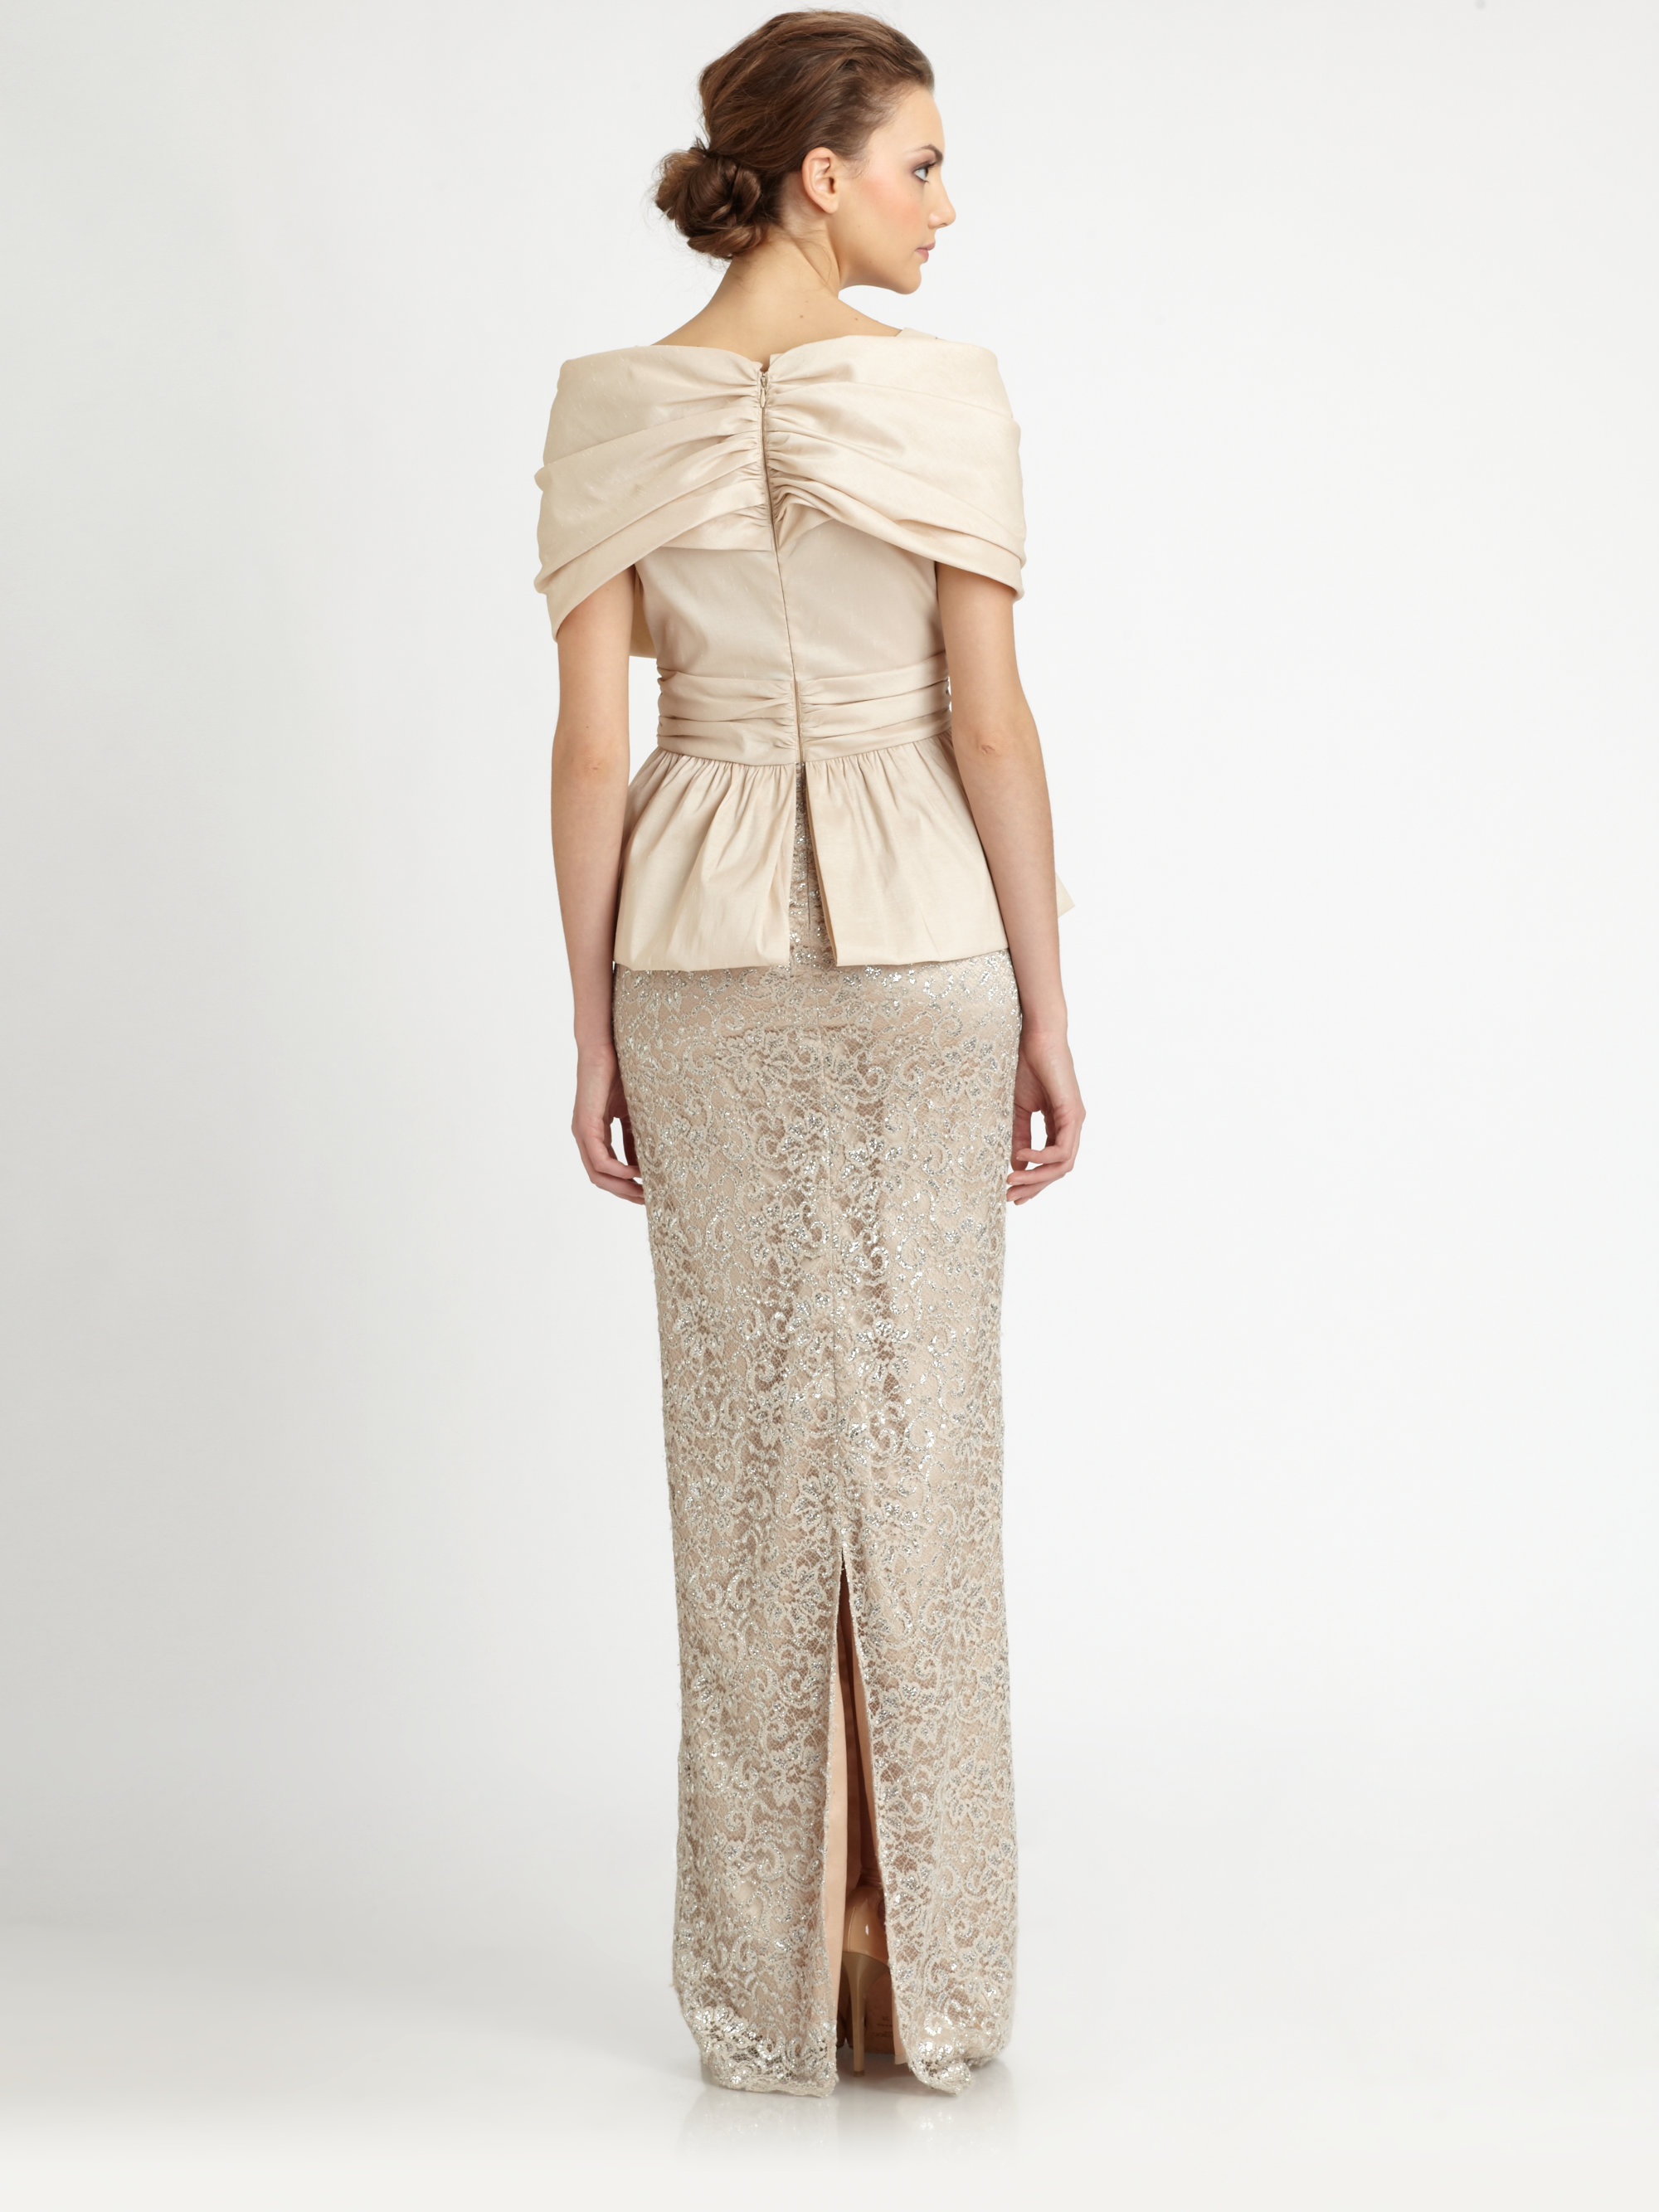 Nice Badgley Mischka Peplum Gown Crest - Images for wedding gown ...